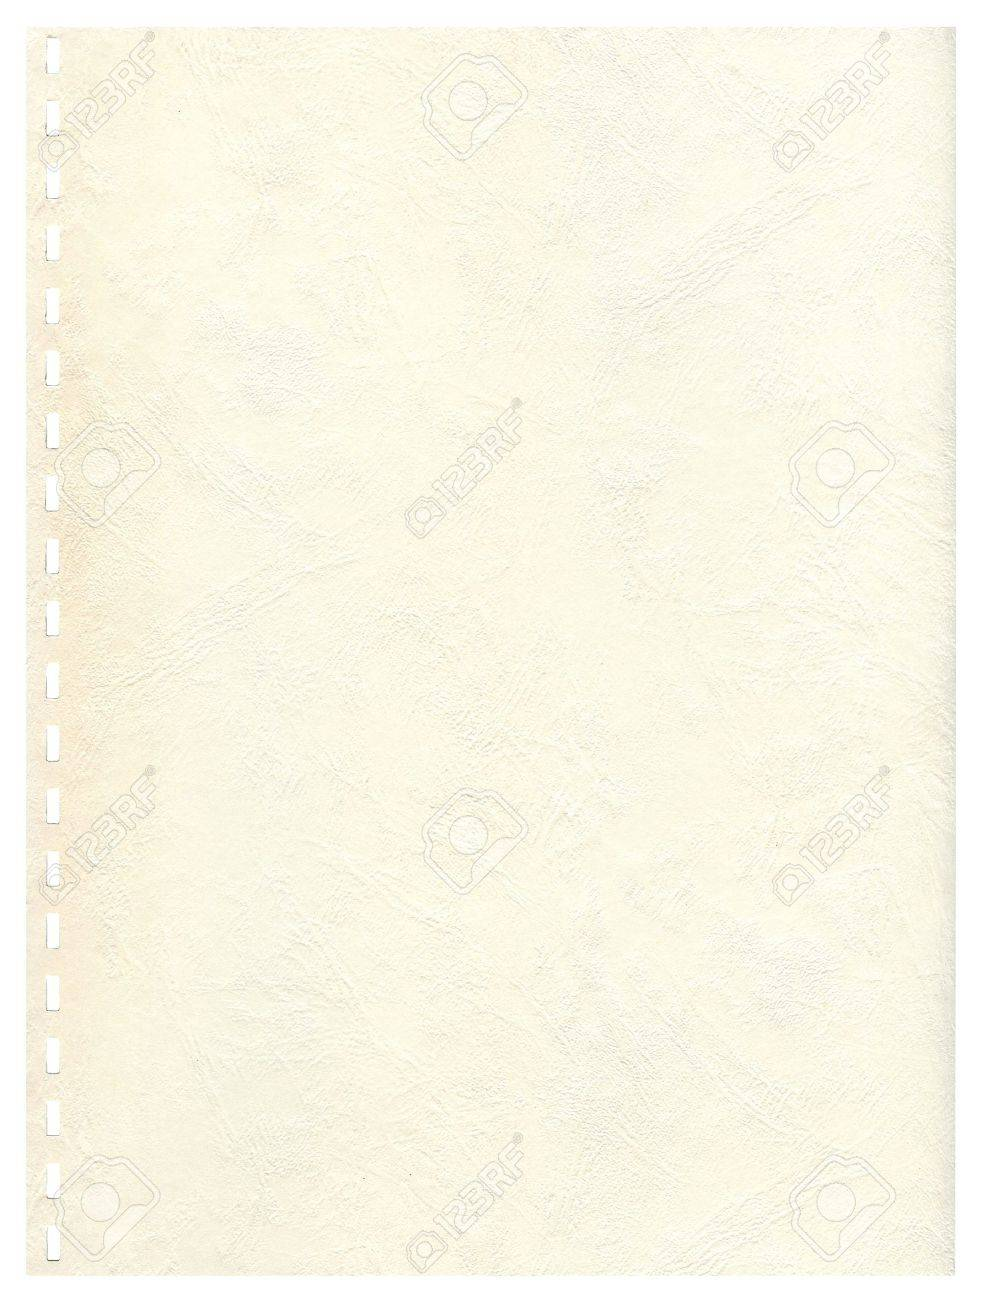 Vintage old page from a notebook to background Stock Photo - 4656544